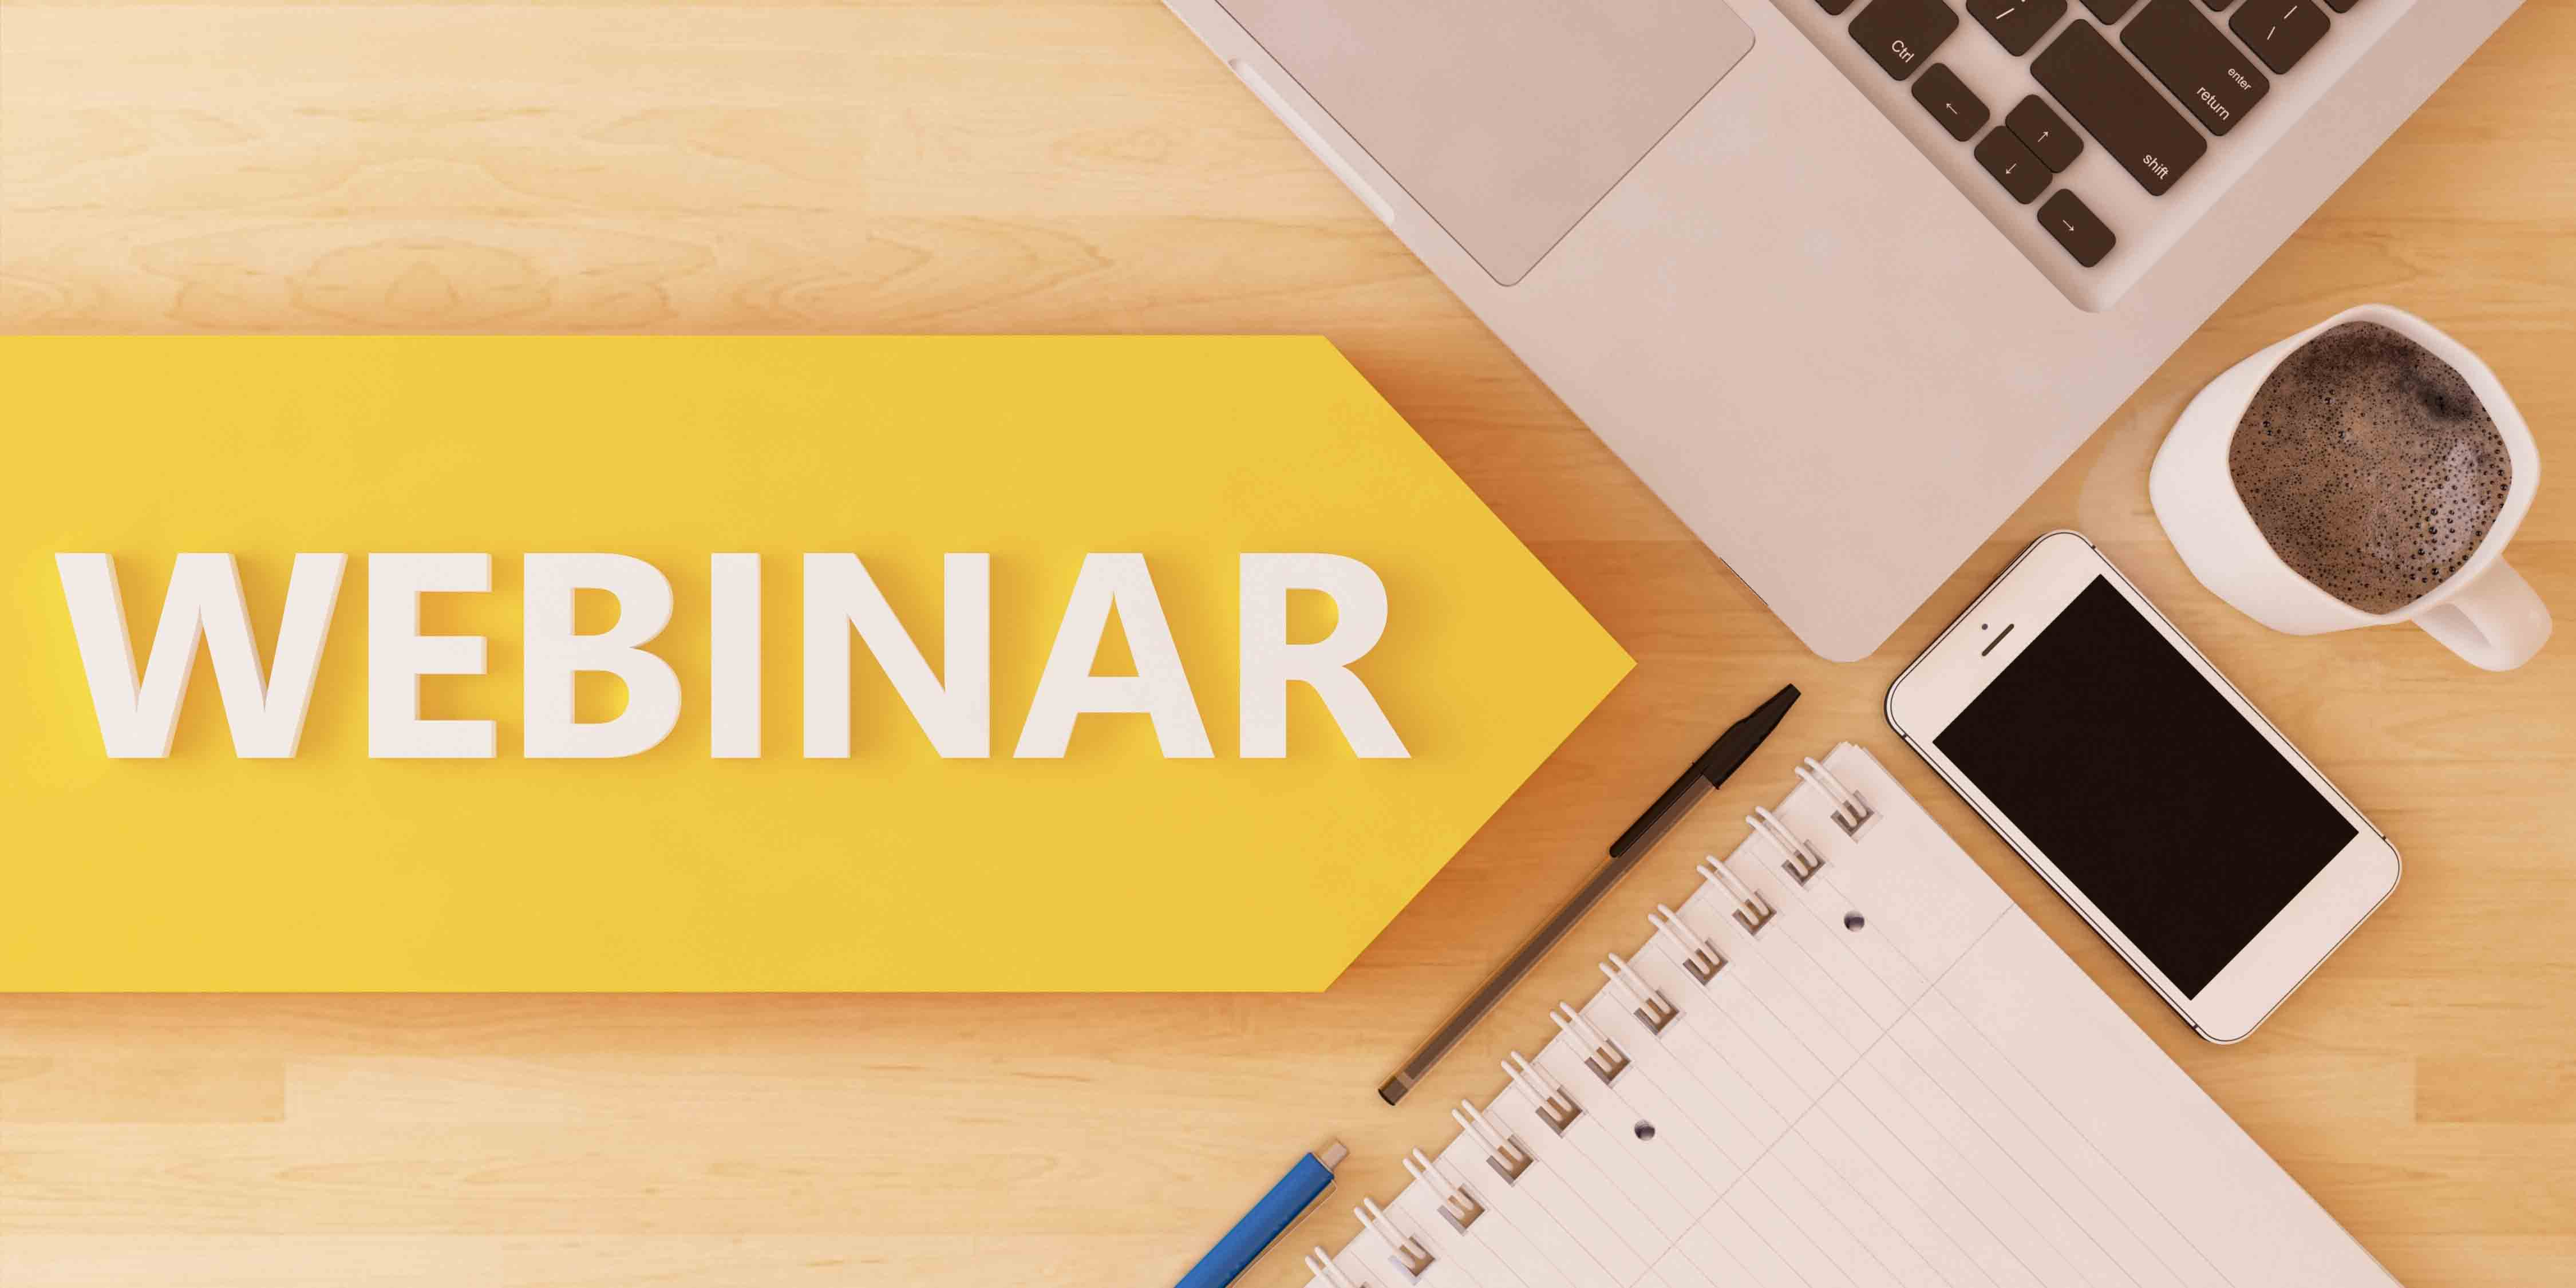 Webinar text on yellow arrow next to computer and notebook